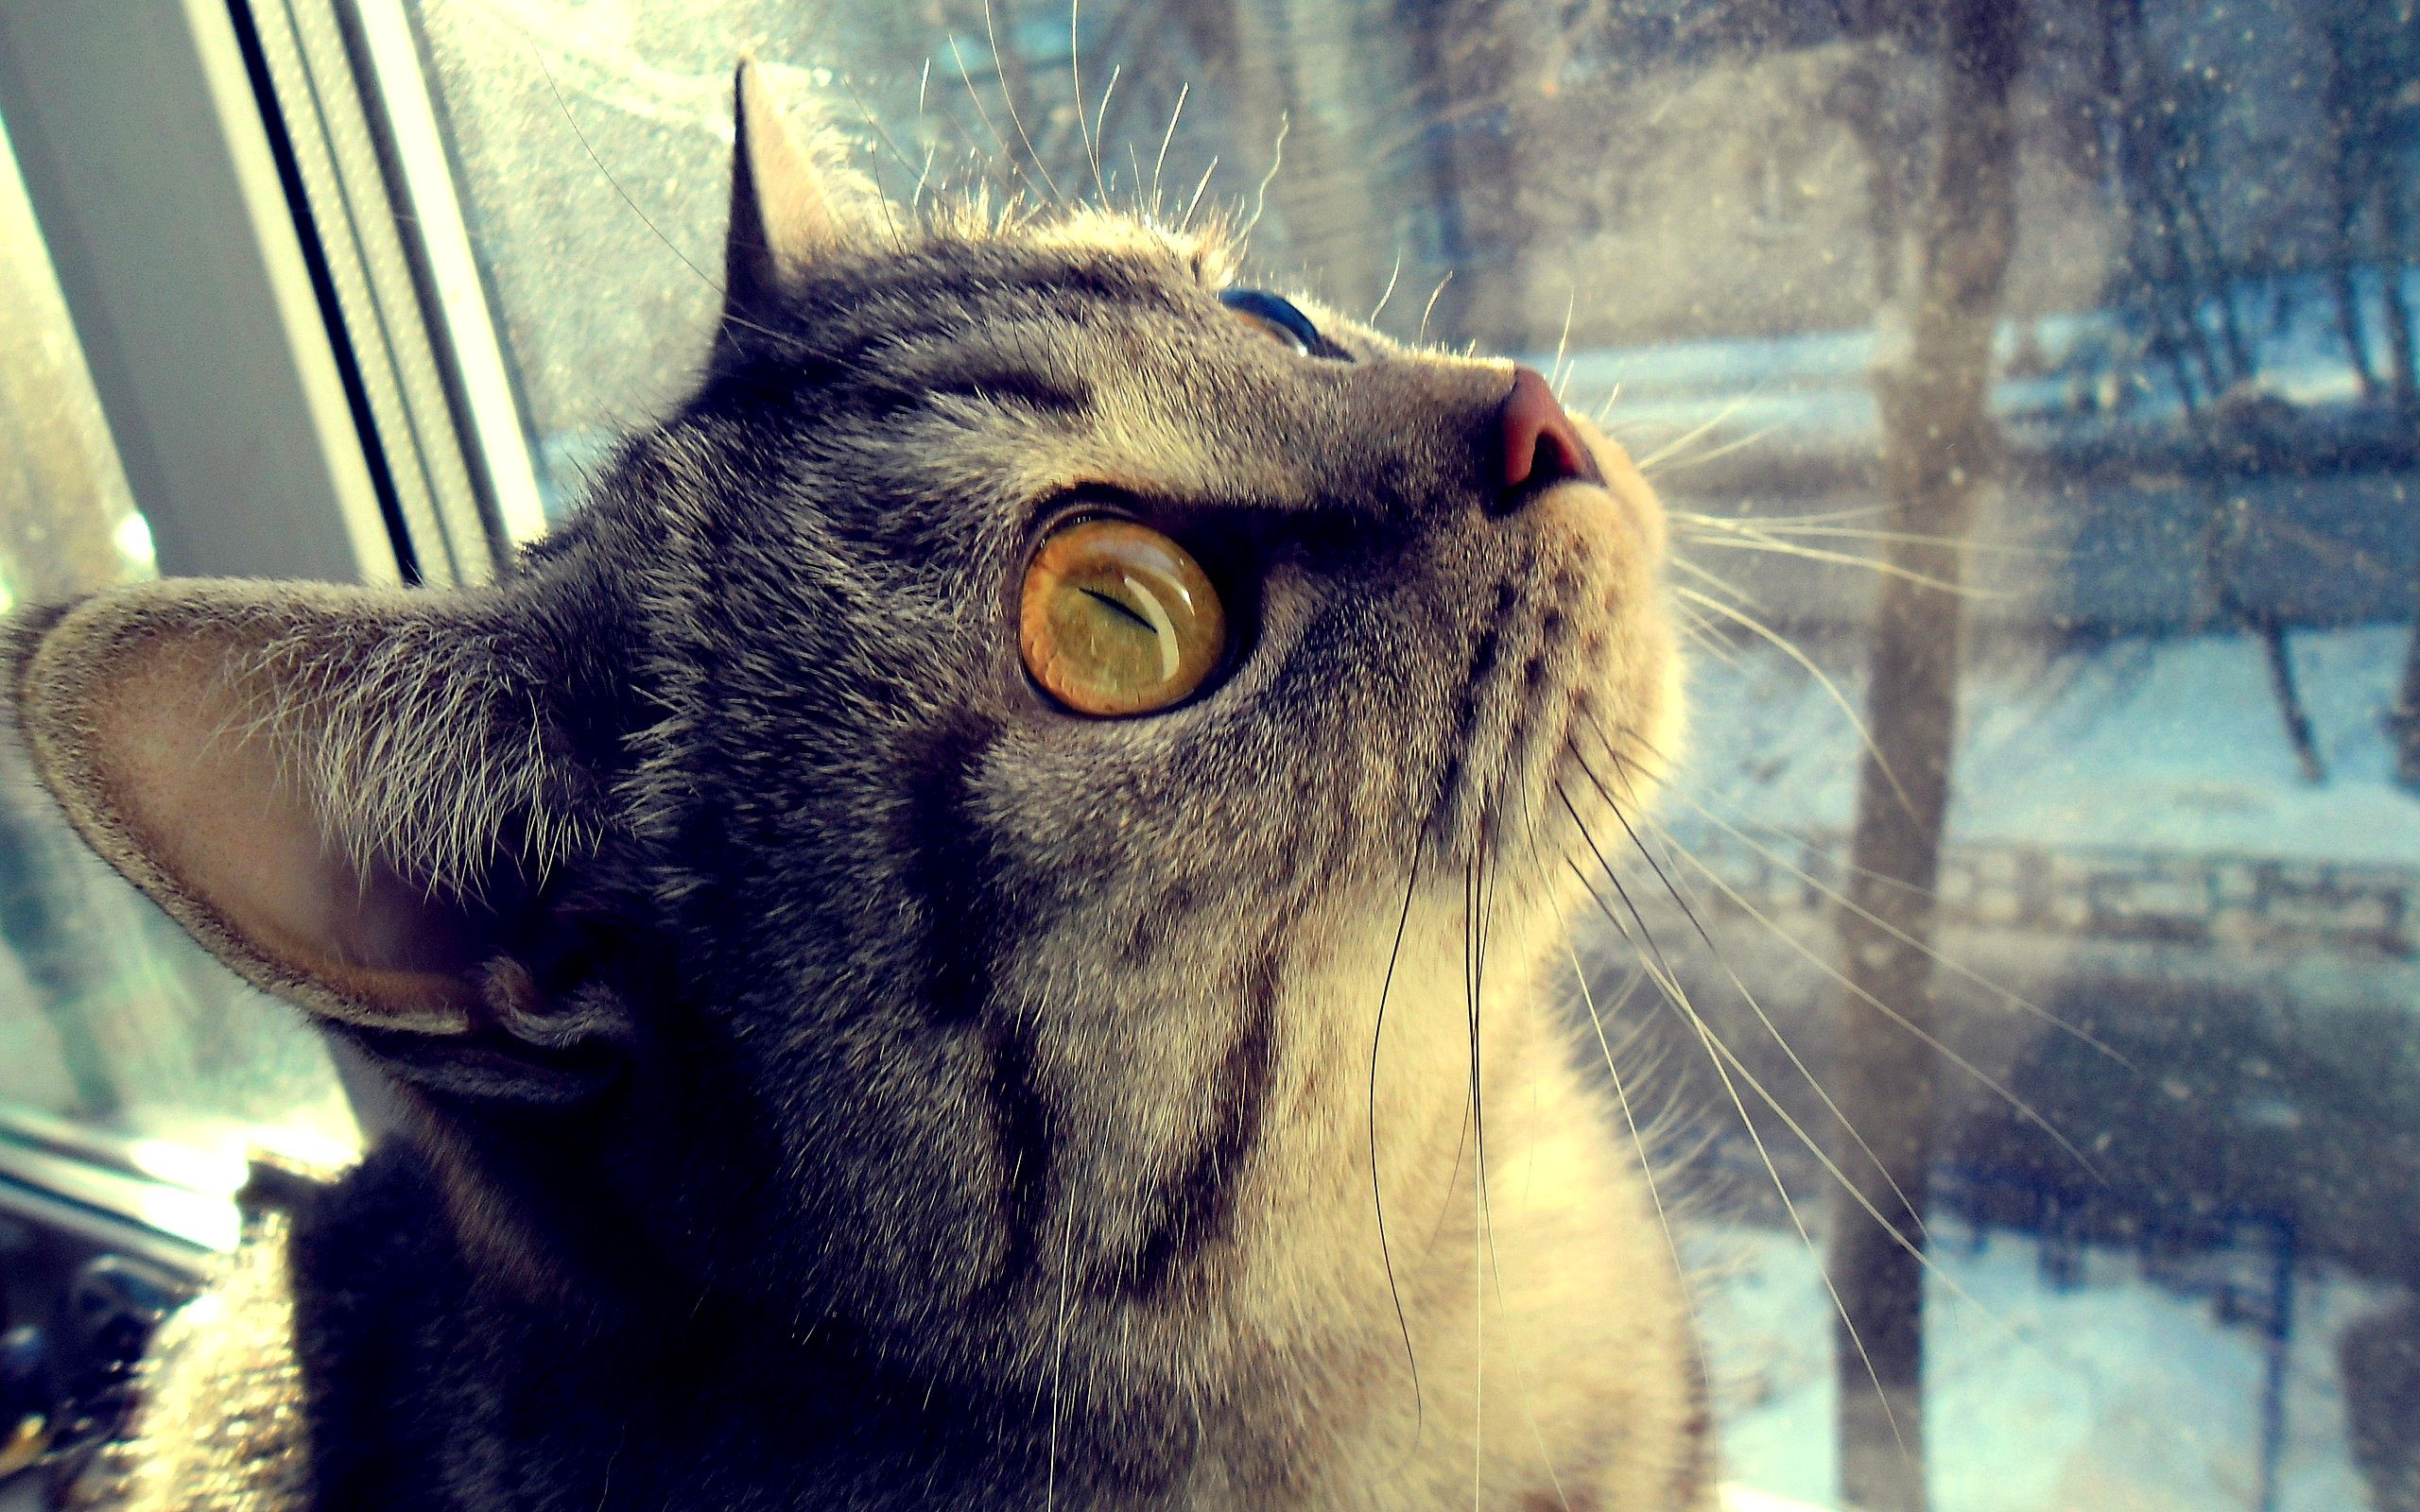 108289 download wallpaper Animals, Cat, Muzzle, Eyes, Window screensavers and pictures for free